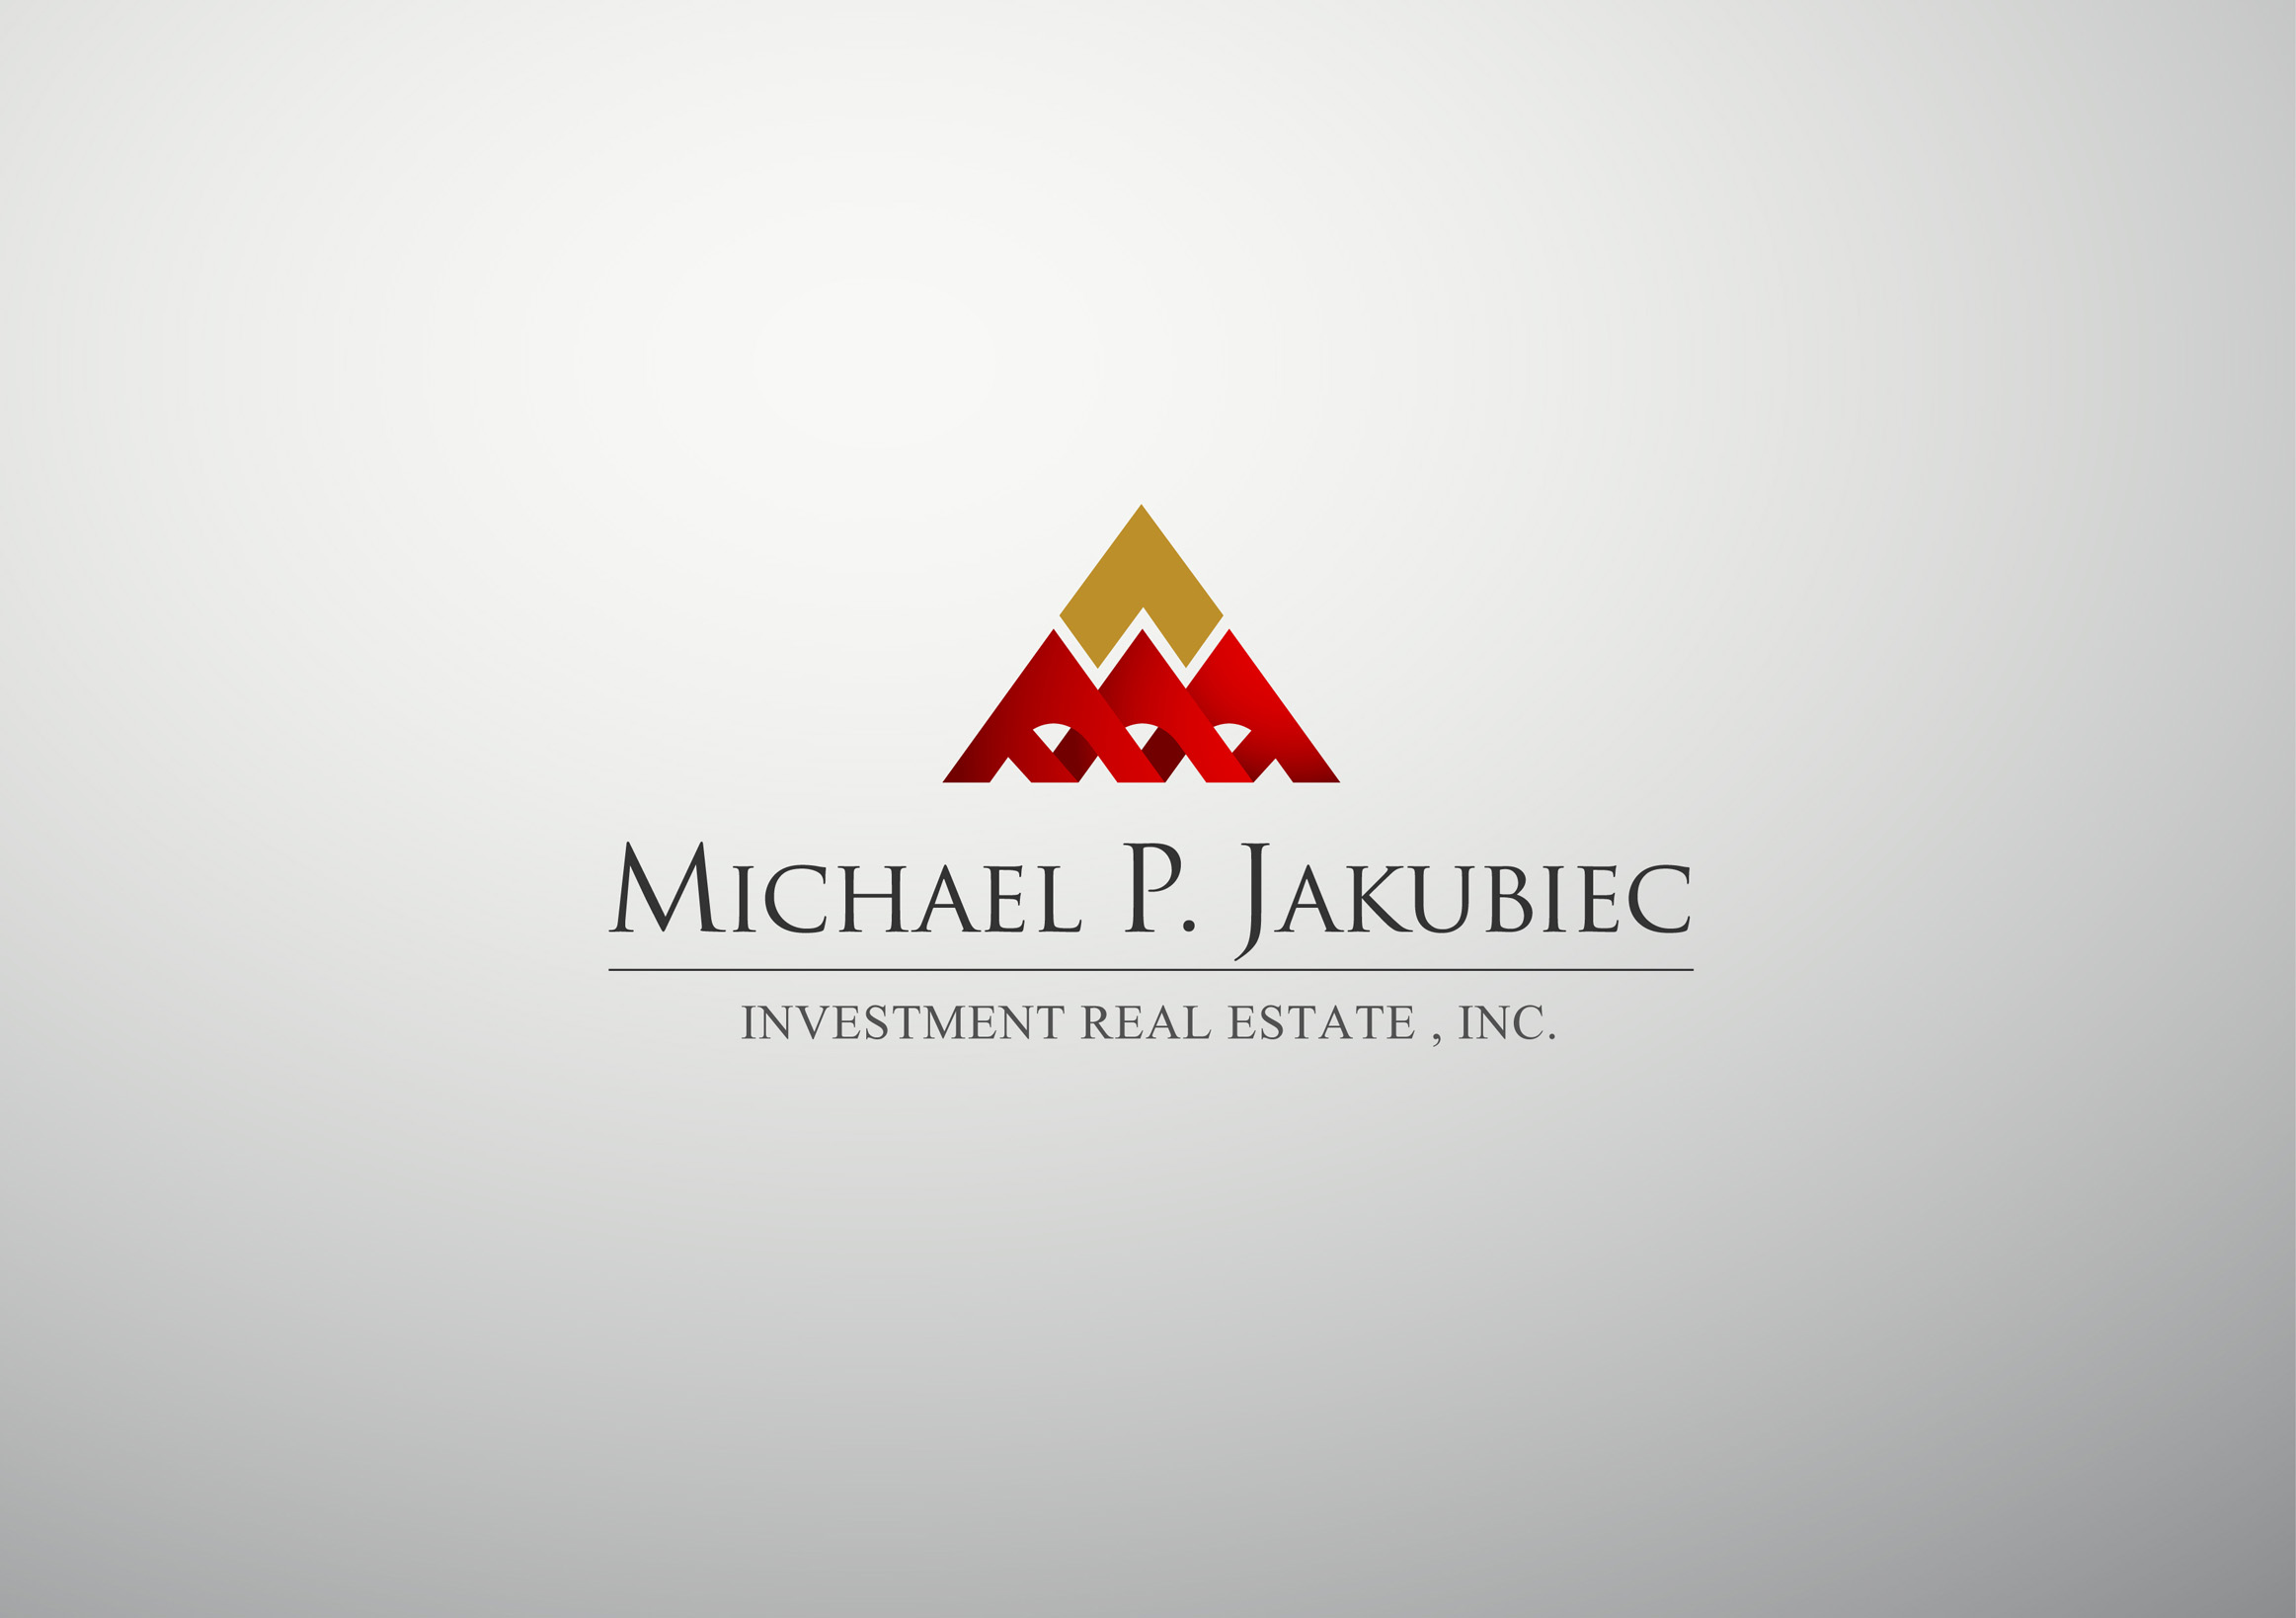 Logo Design by Mark Anthony Moreto Jordan - Entry No. 120 in the Logo Design Contest New Logo Design for Michael P. Jakubiec Investment Real Estate, Inc..